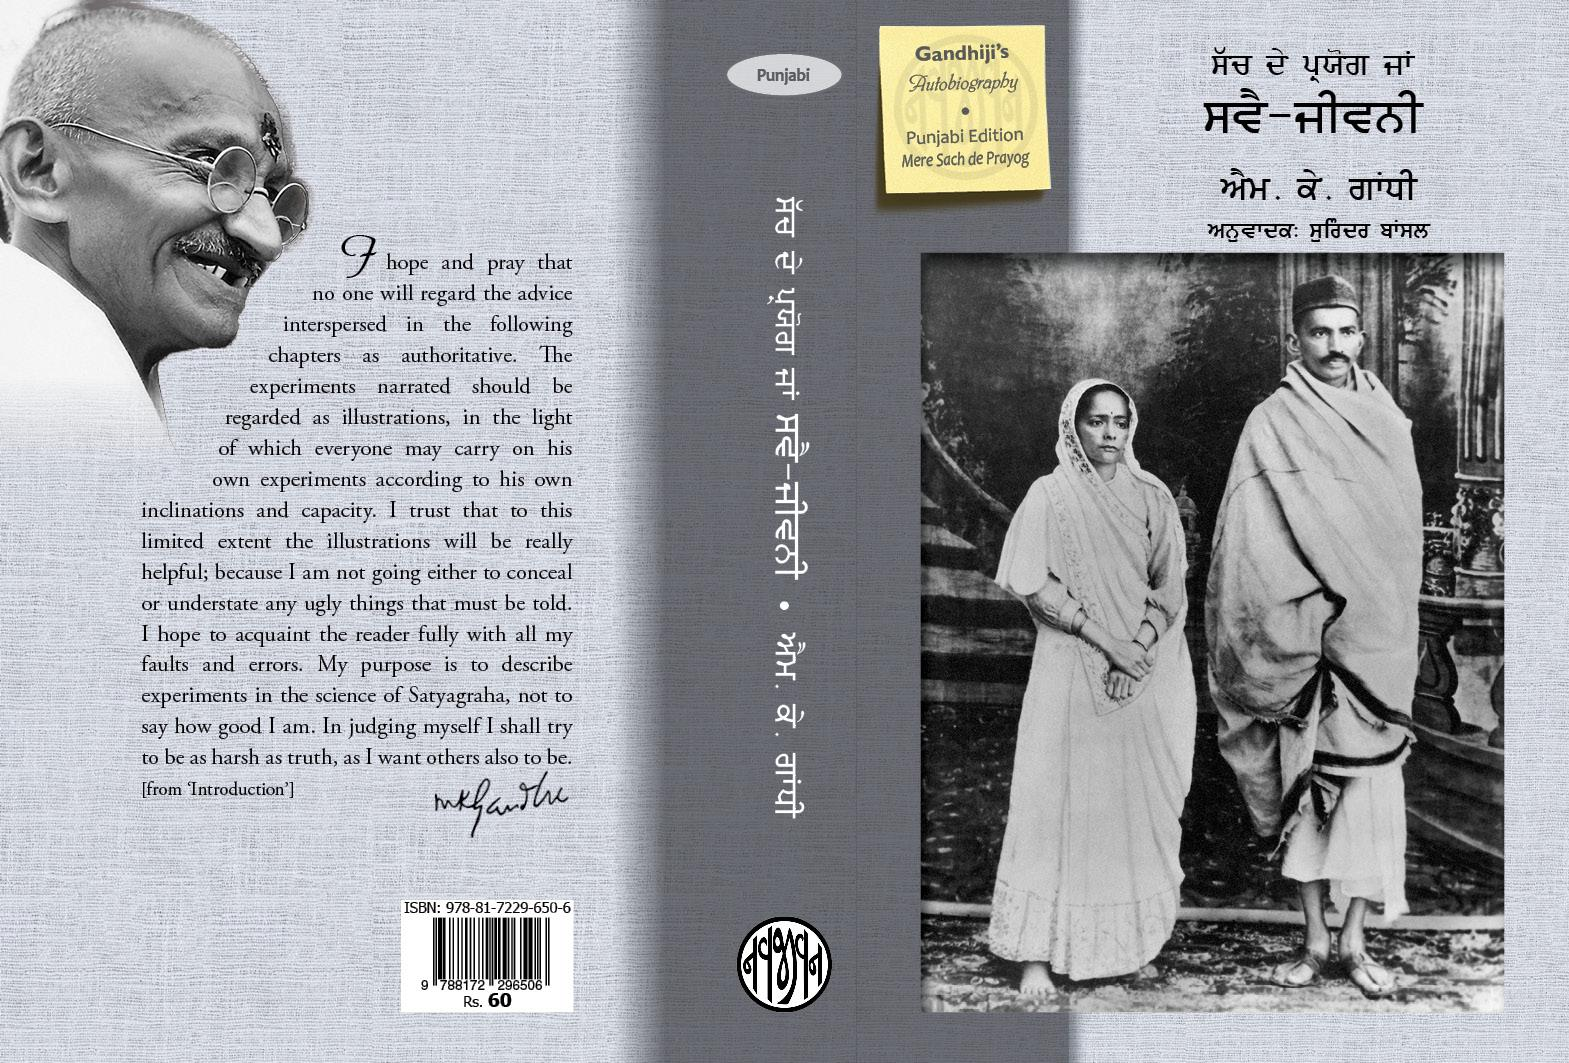 Mahatma Gandhi's autobiography will be available in Punjabi